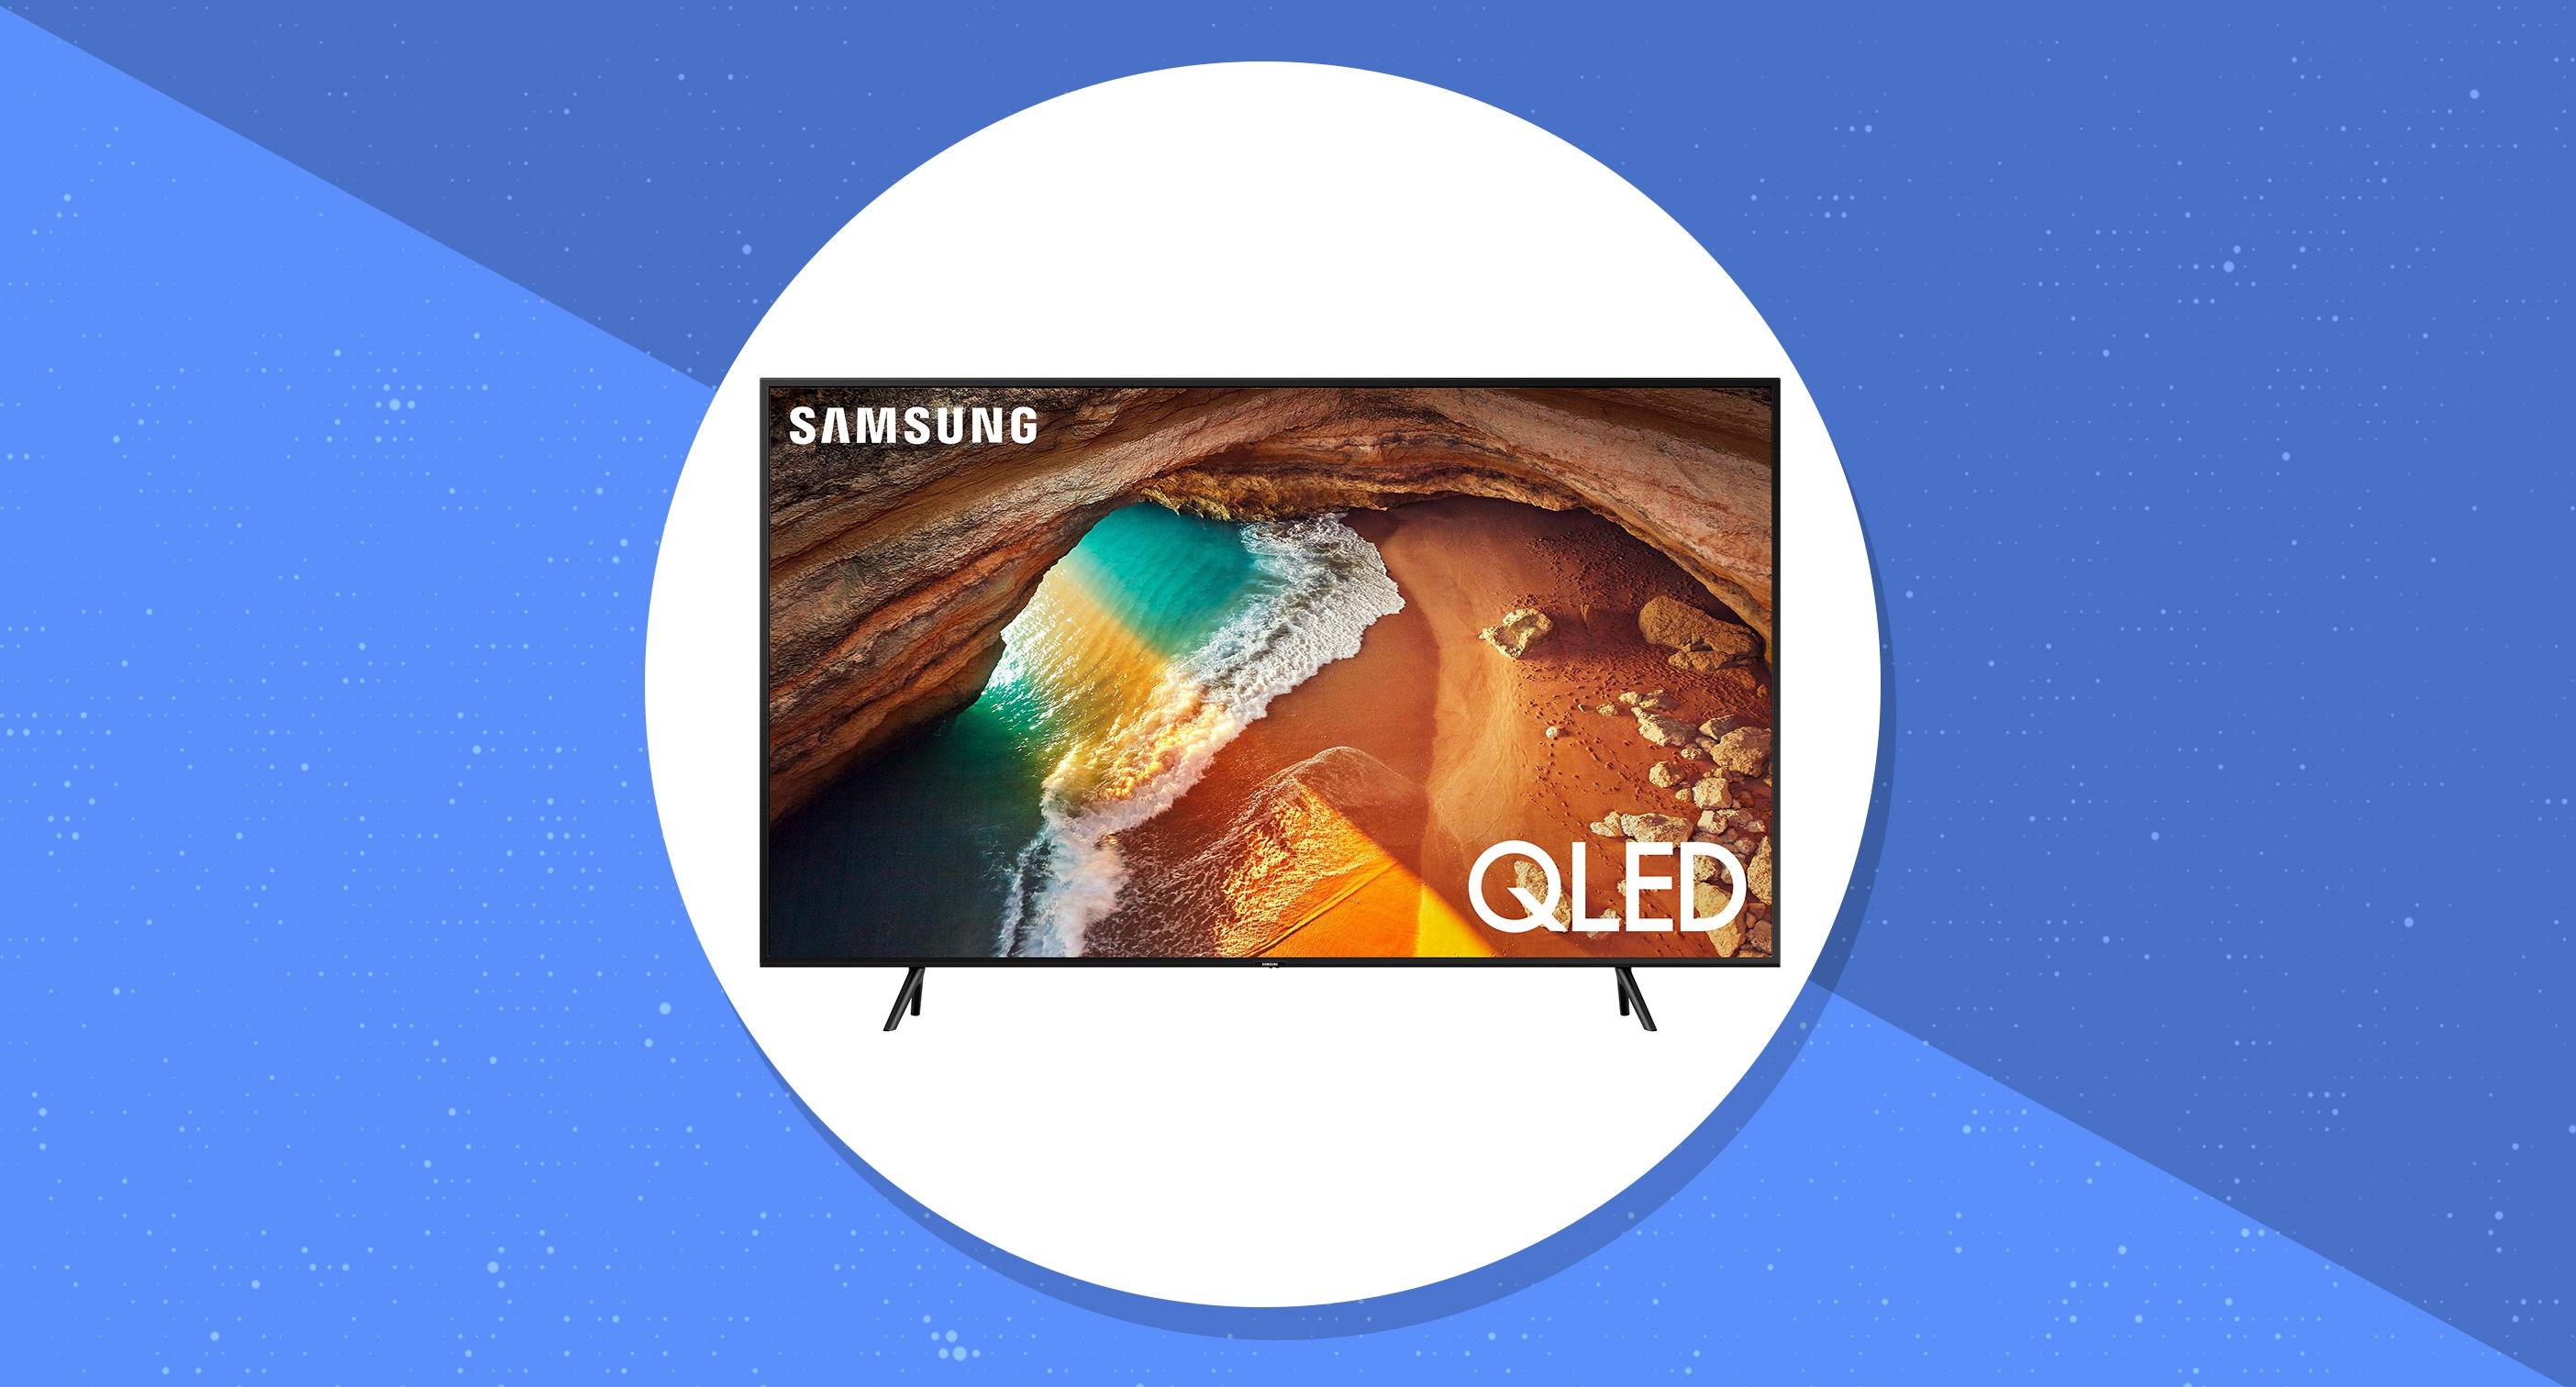 There's still time: Walmart is having an epic sale on Samsung 4K TVs, including QLED models